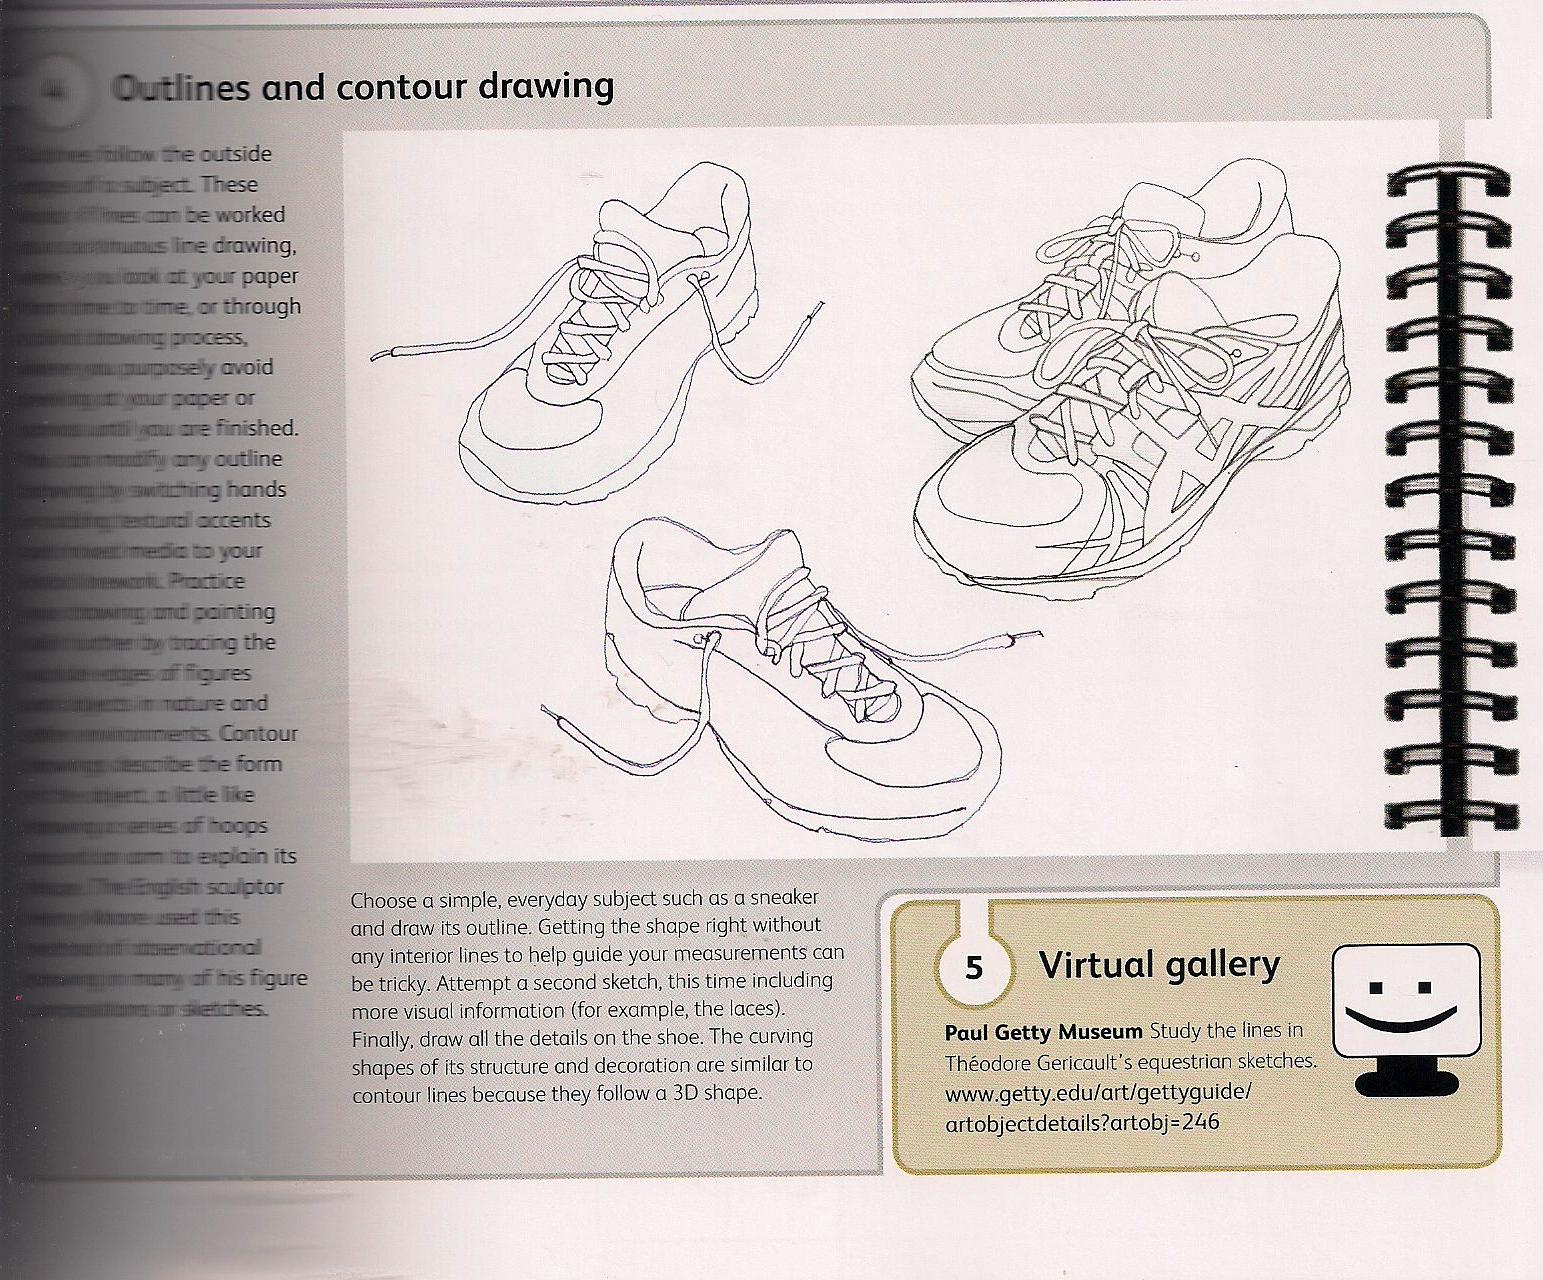 Contour Line Drawing Handout : Images about drawing on pinterest